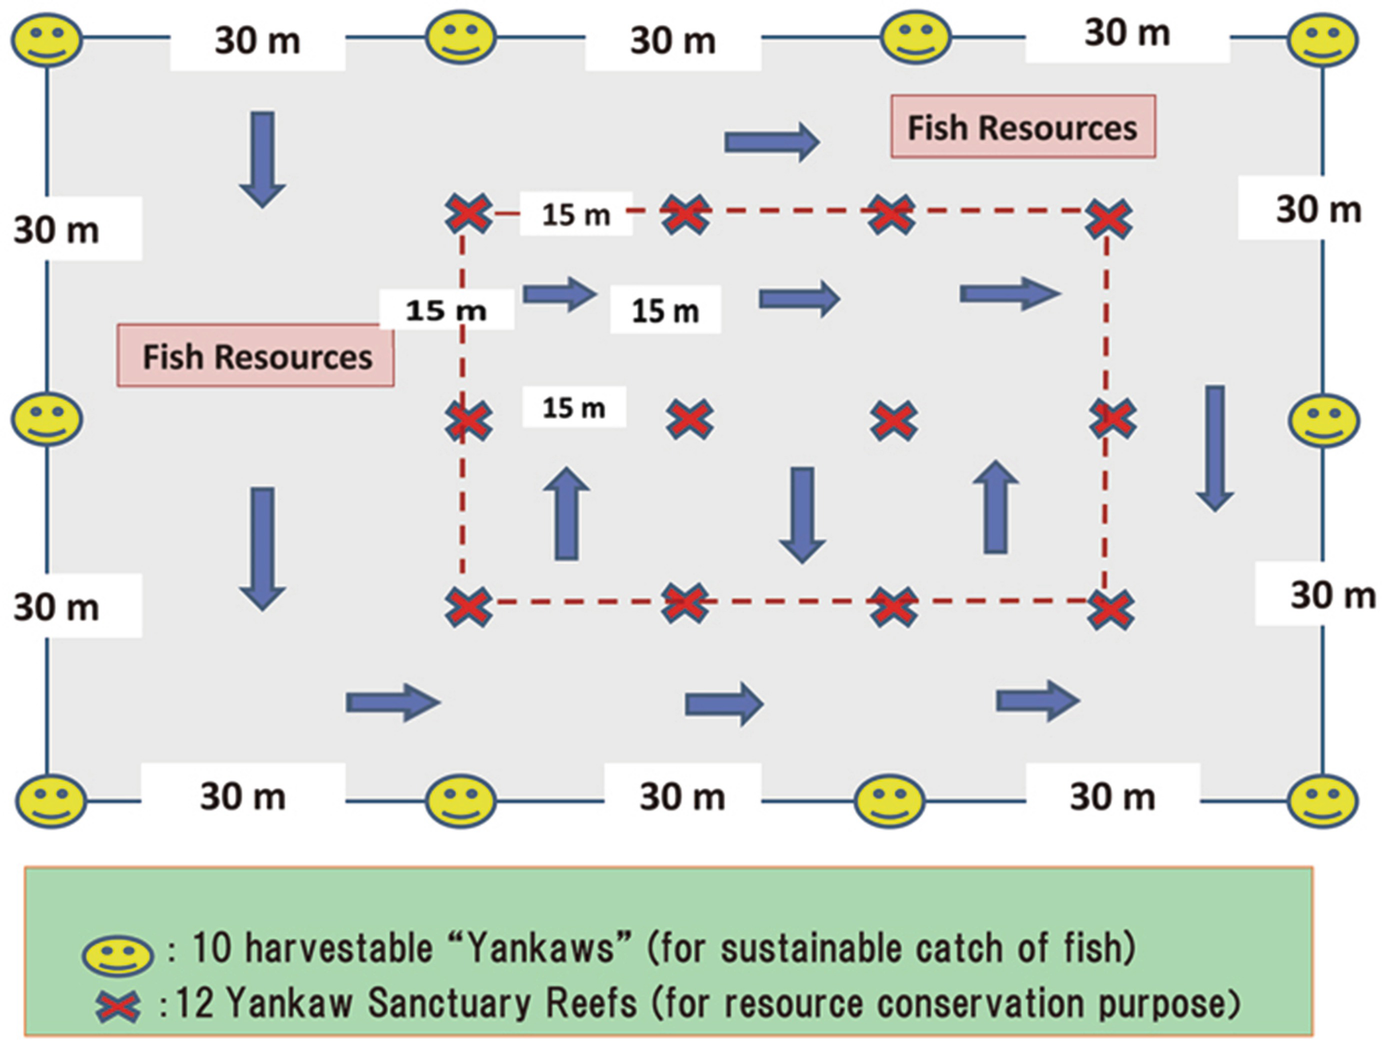 Interactive Governance for Sustainable Resource Use and